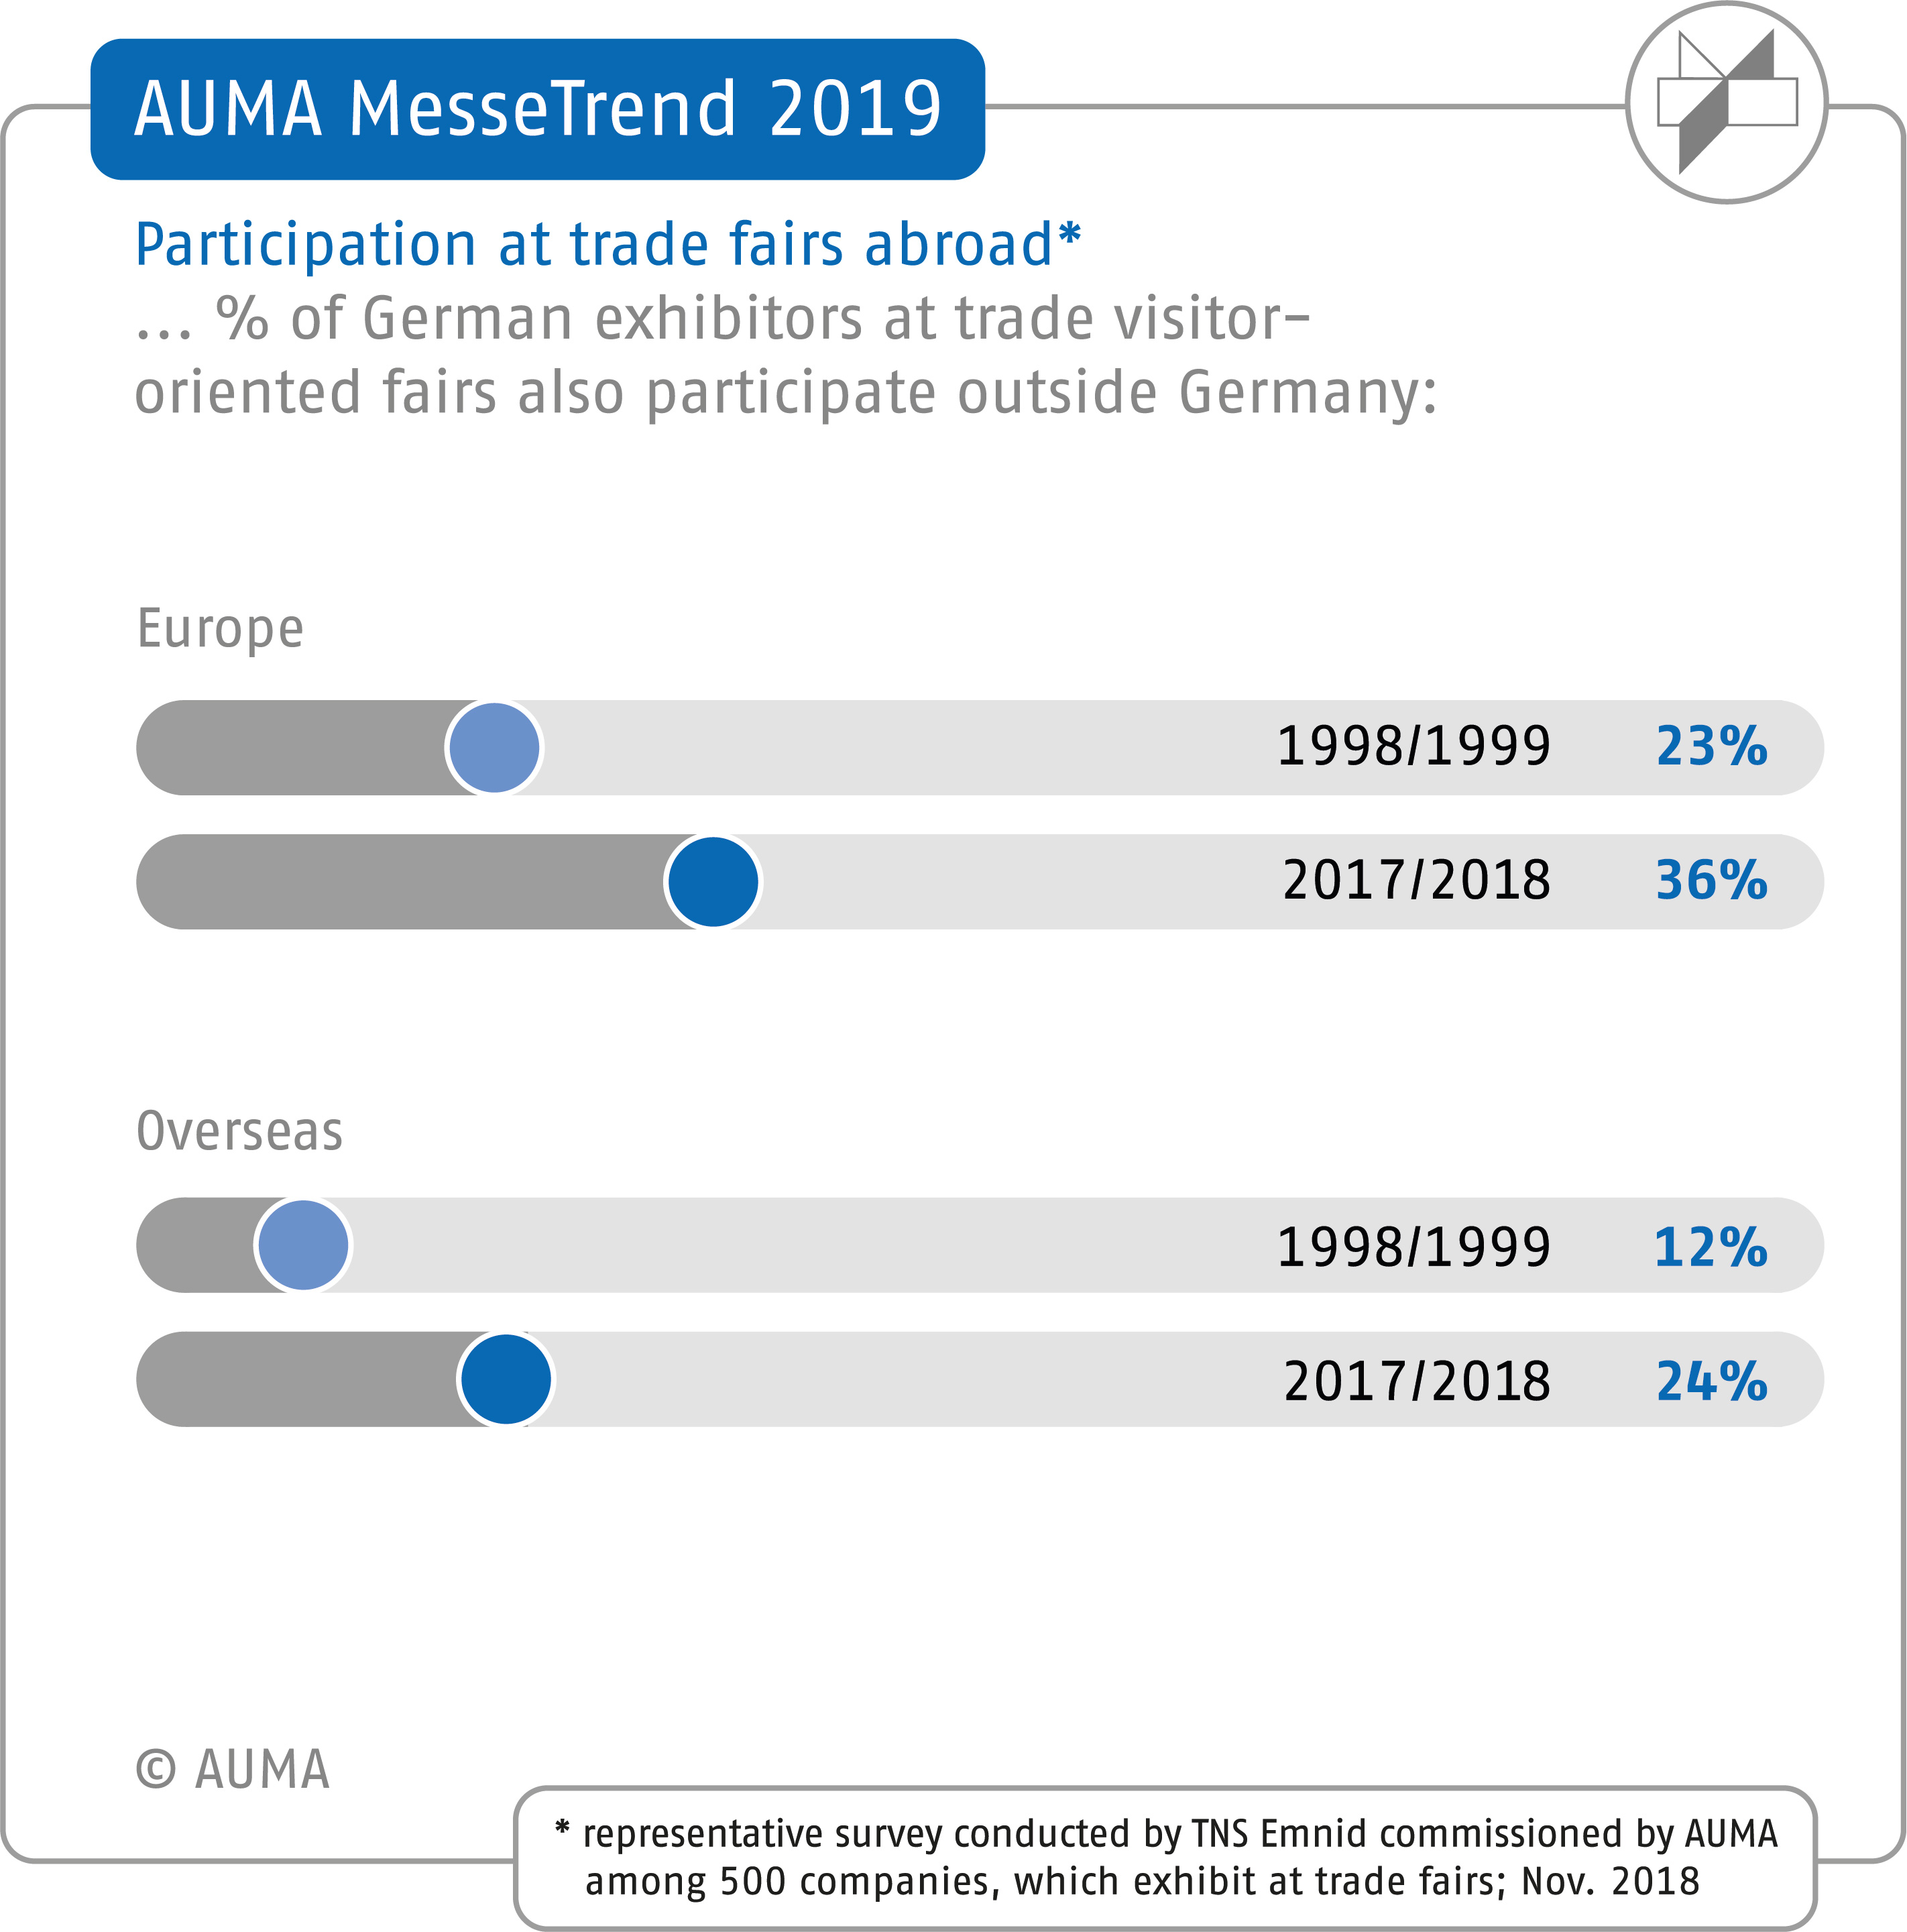 AUMA MesseTrend 2019 - Participation at trade fairs abroad